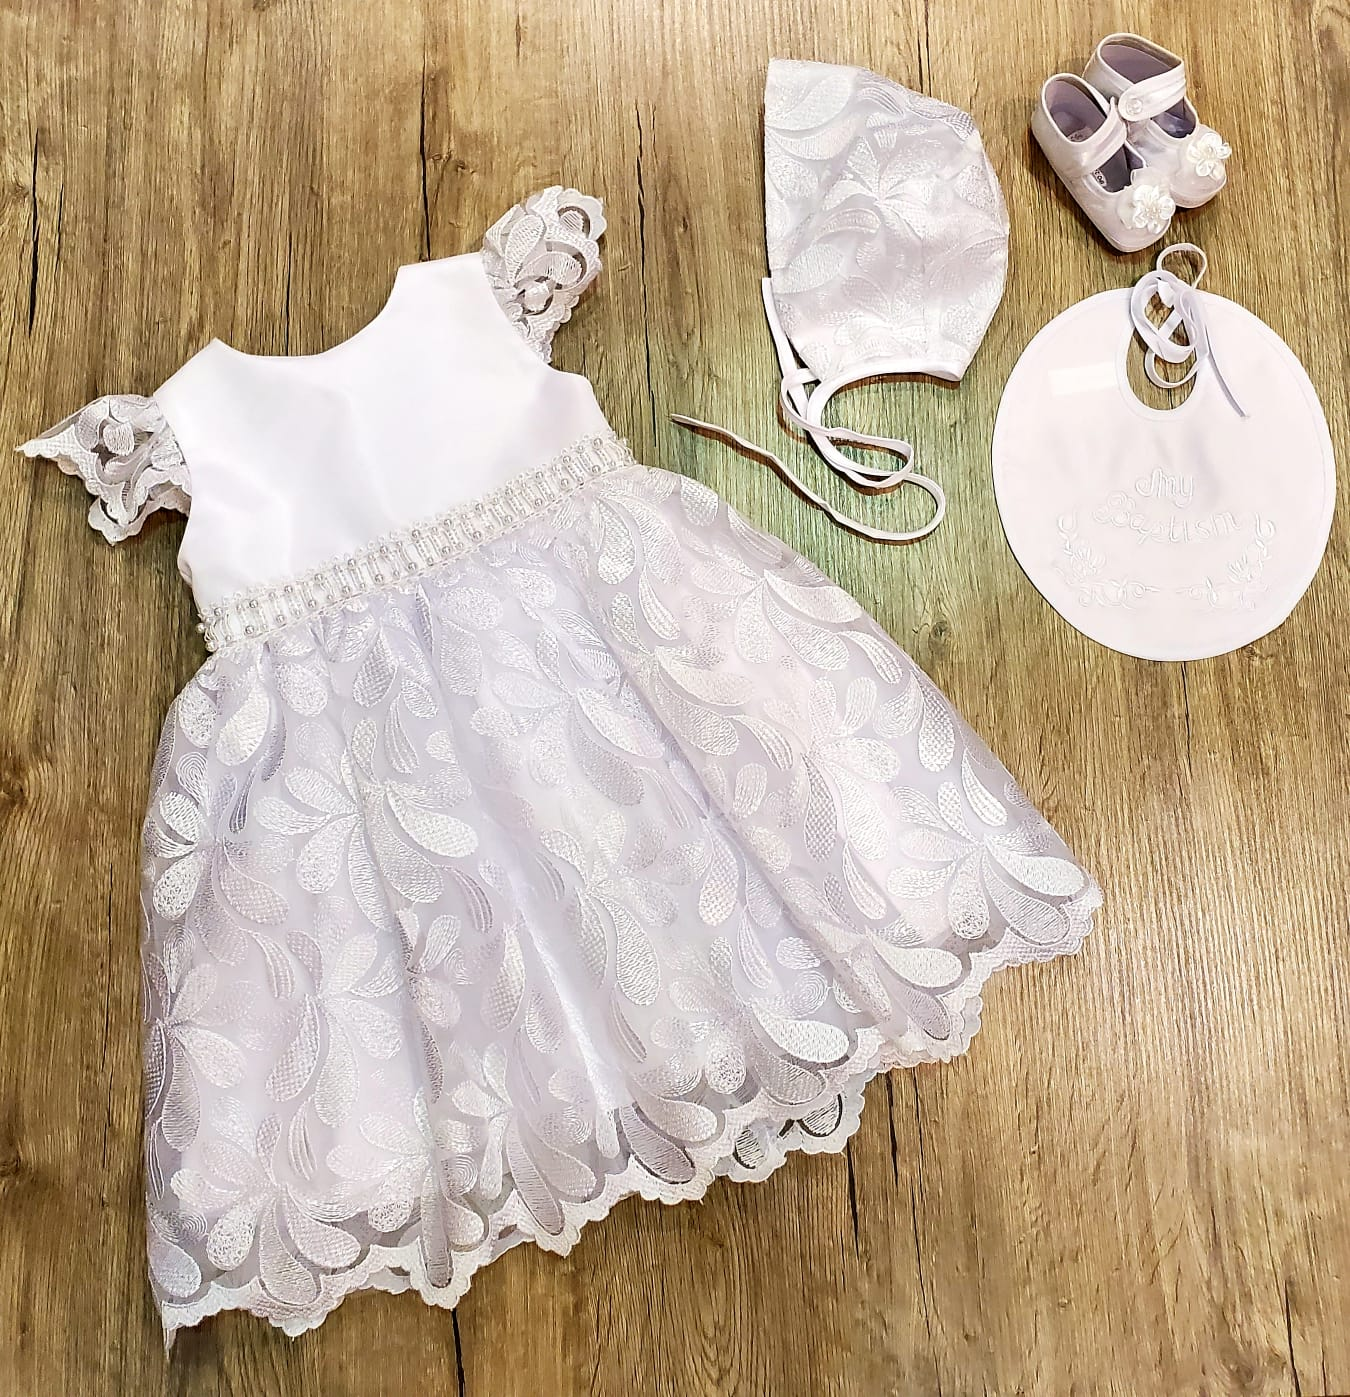 Mimi's Baptism Dress